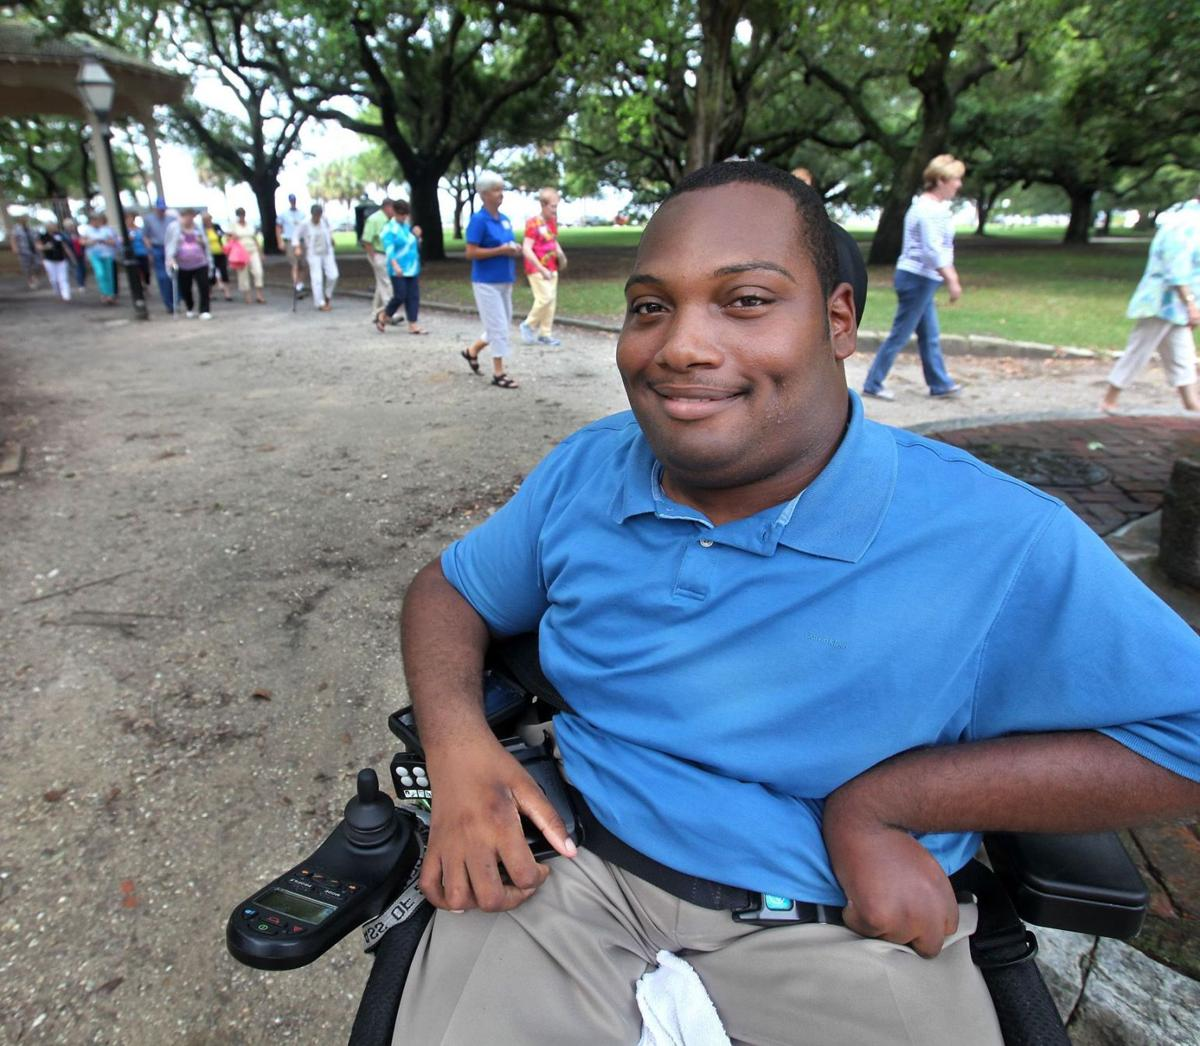 Gaining access: Holy City proves challenging for those with disabilities